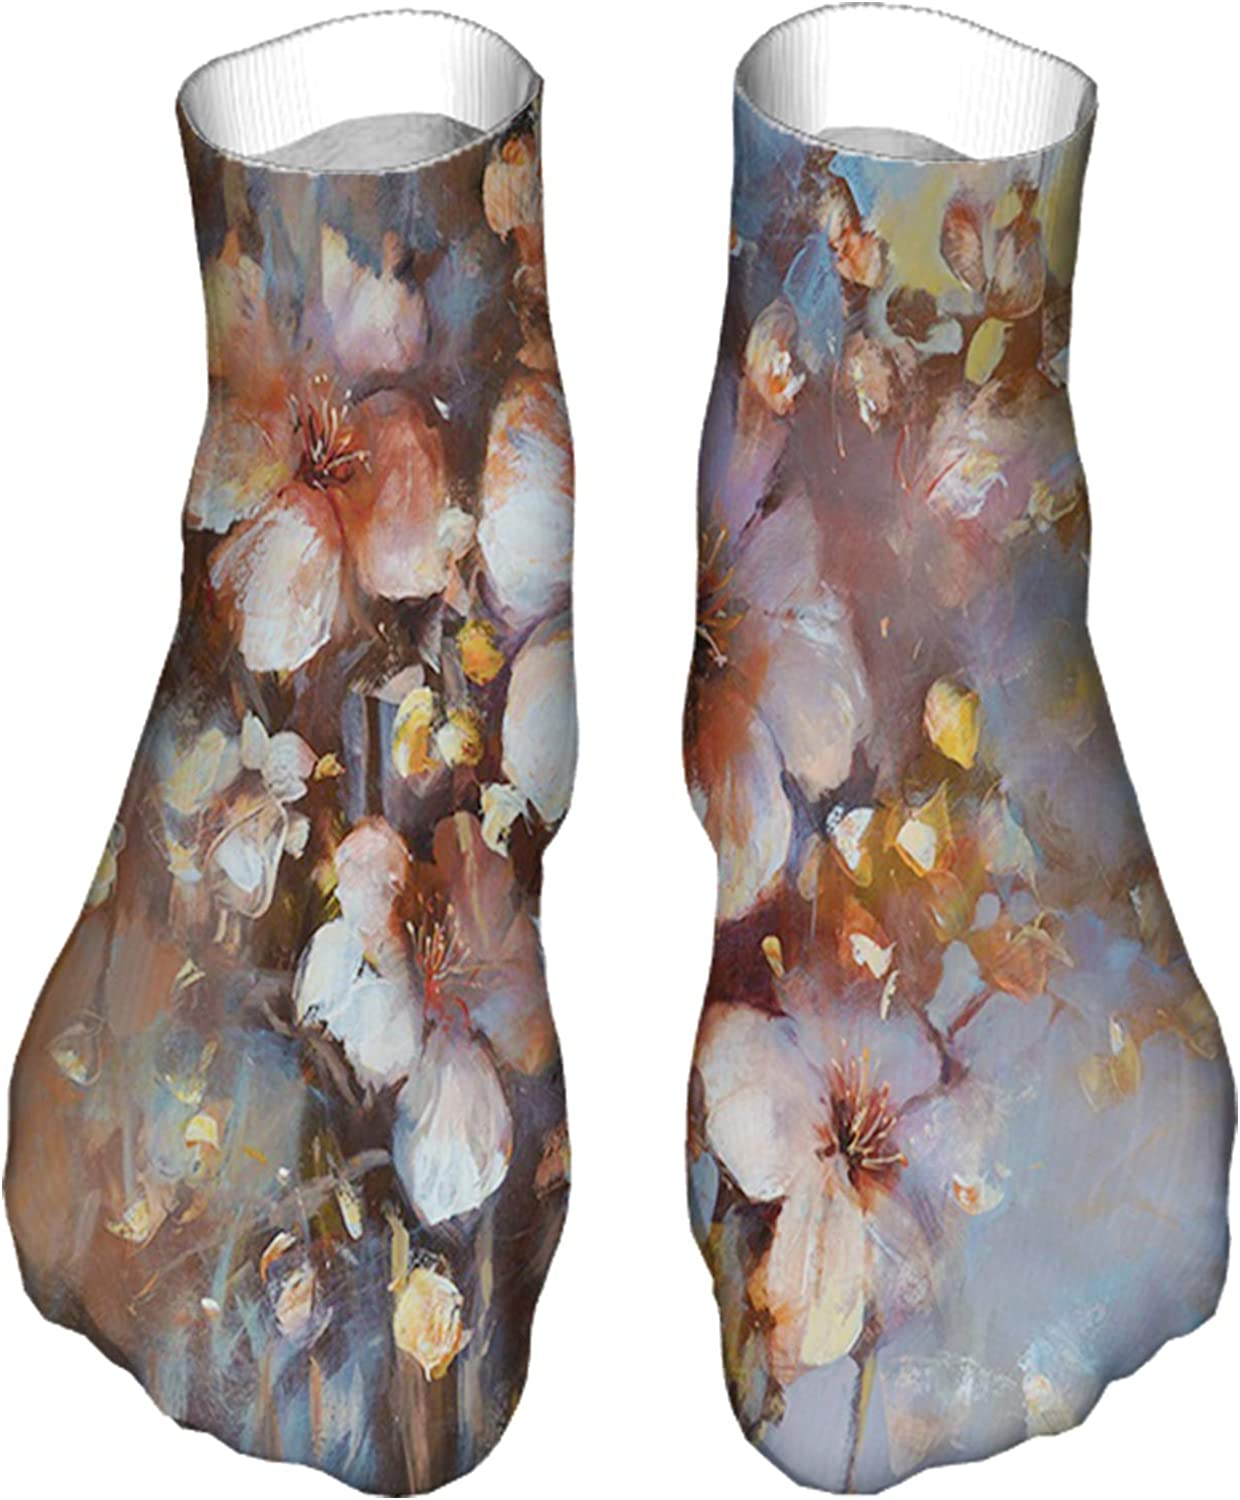 Women's Colorful Patterned Unisex Low Cut/No Show Socks,Hand Drawn Oil Style Painting with Blossoming Cherries